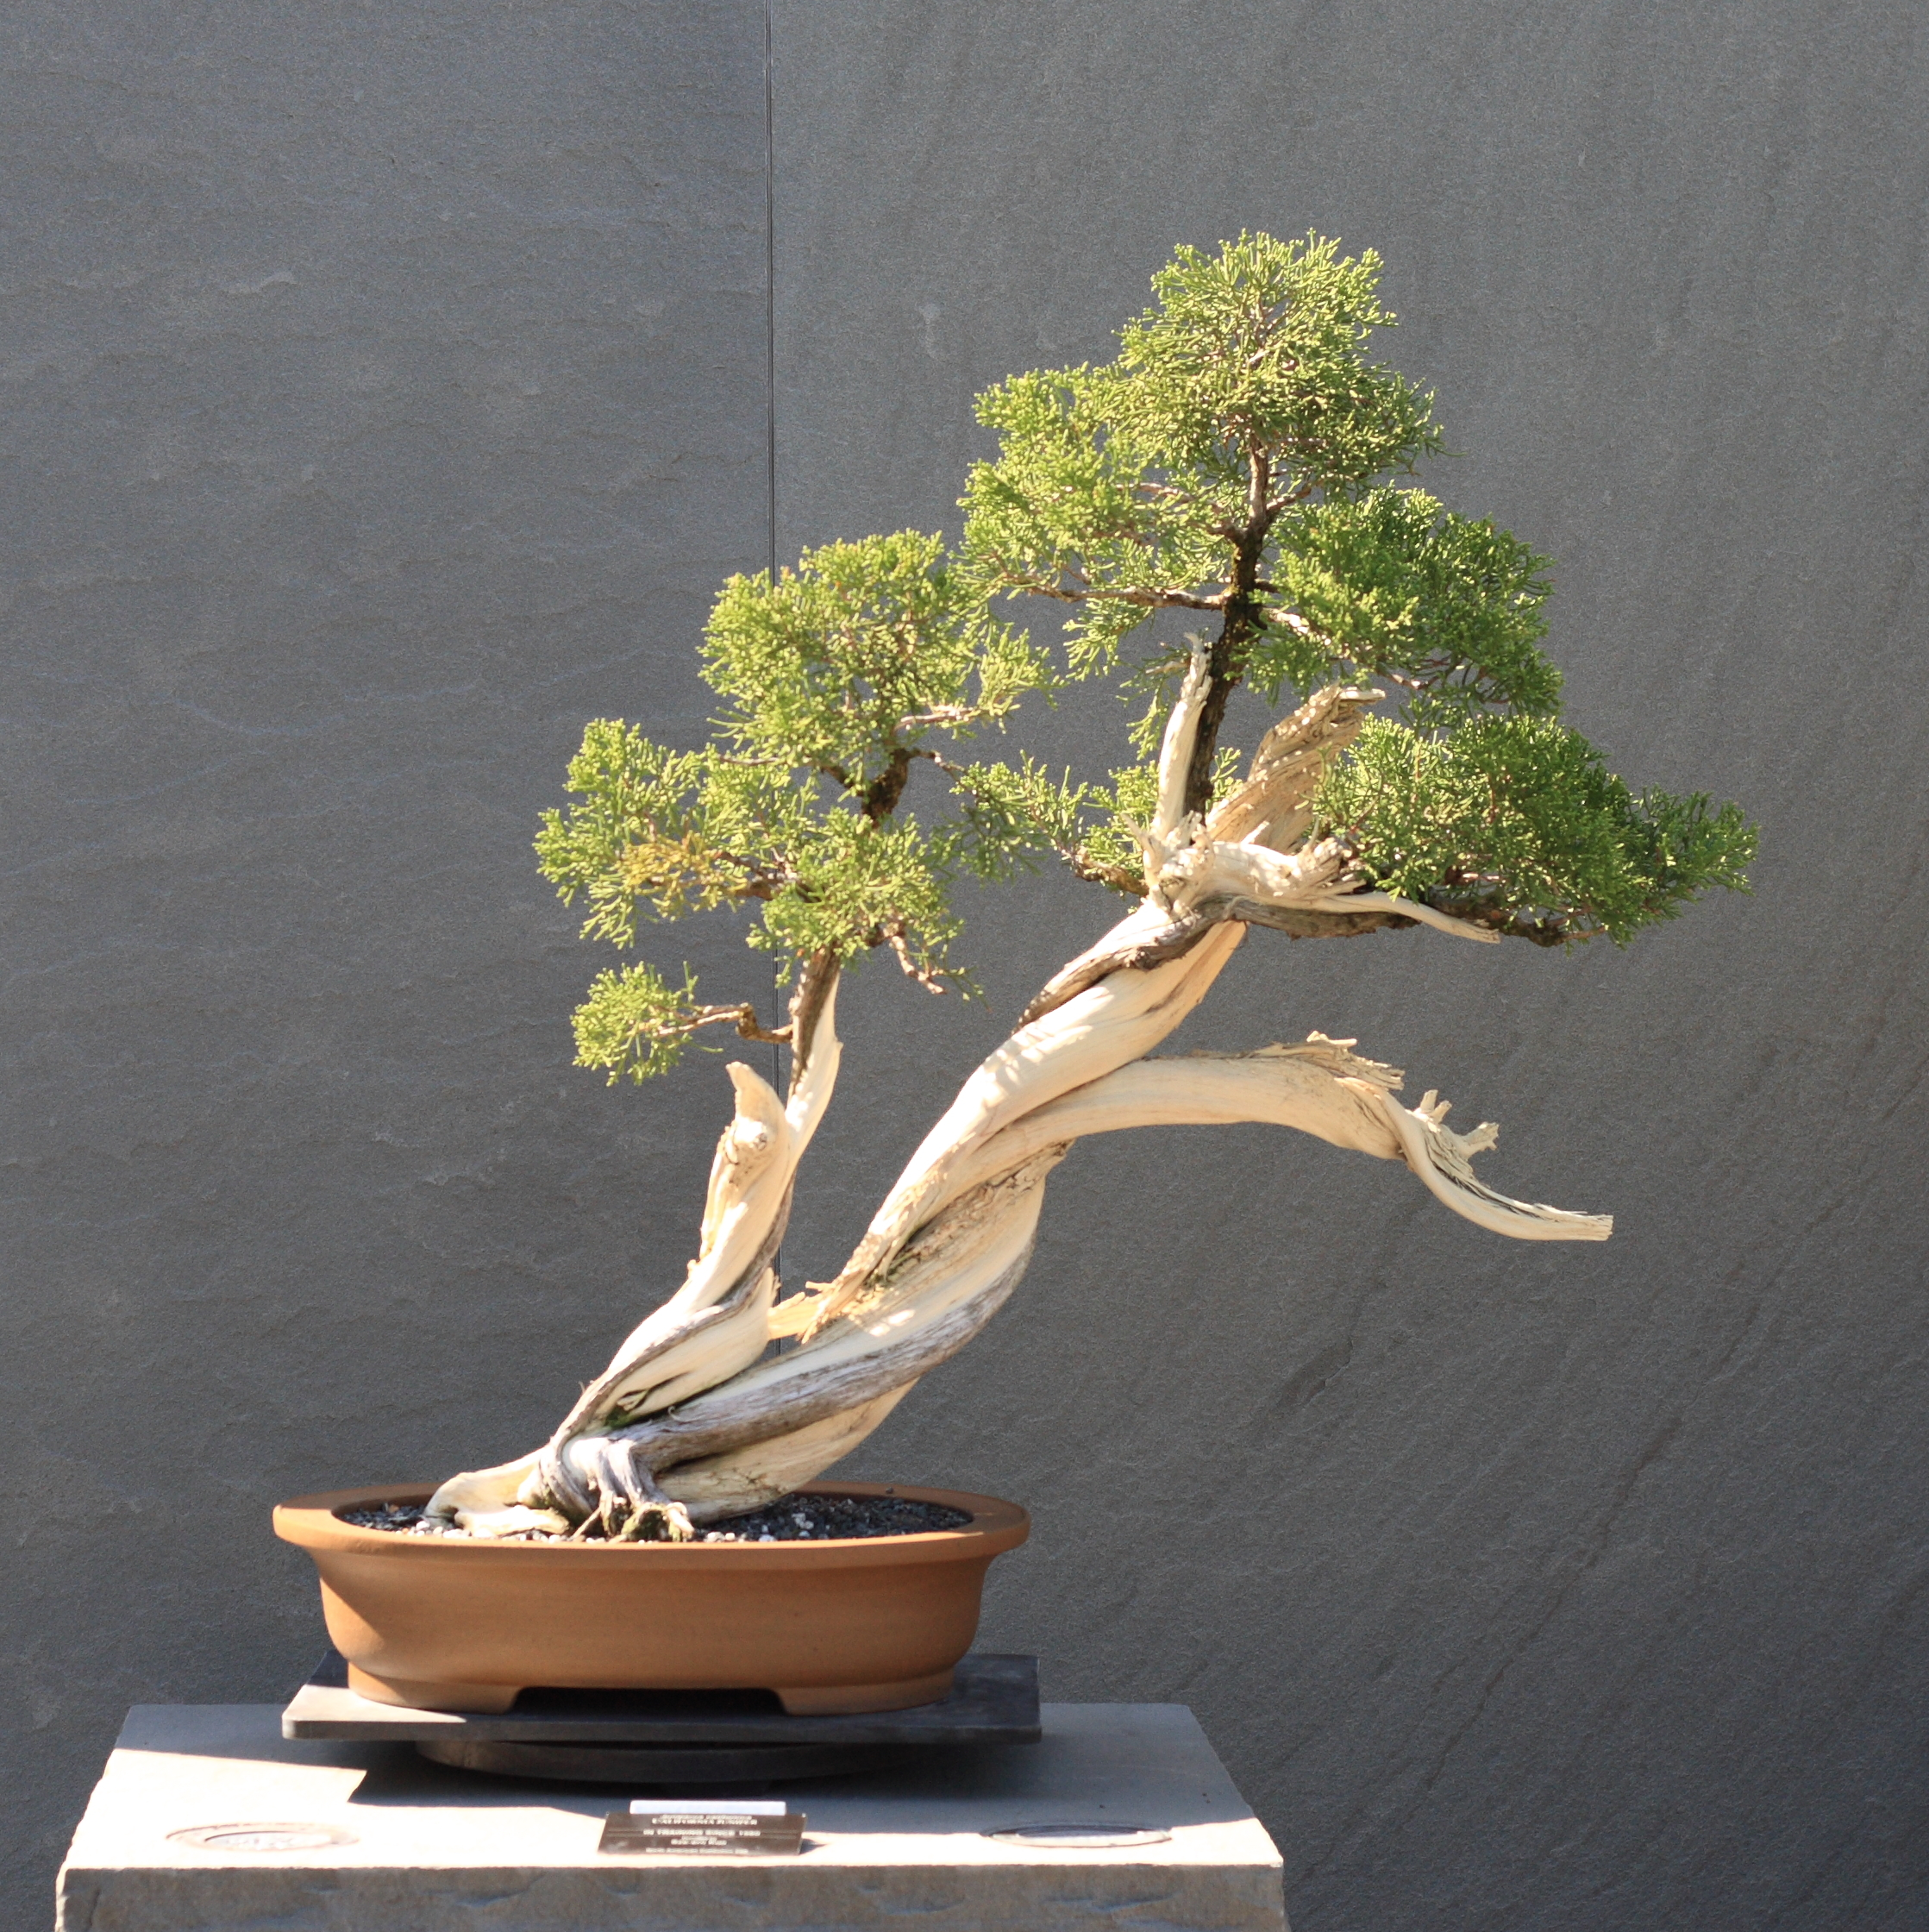 File:California Juniper bonsai 220, October 10, 2008.jpg ...